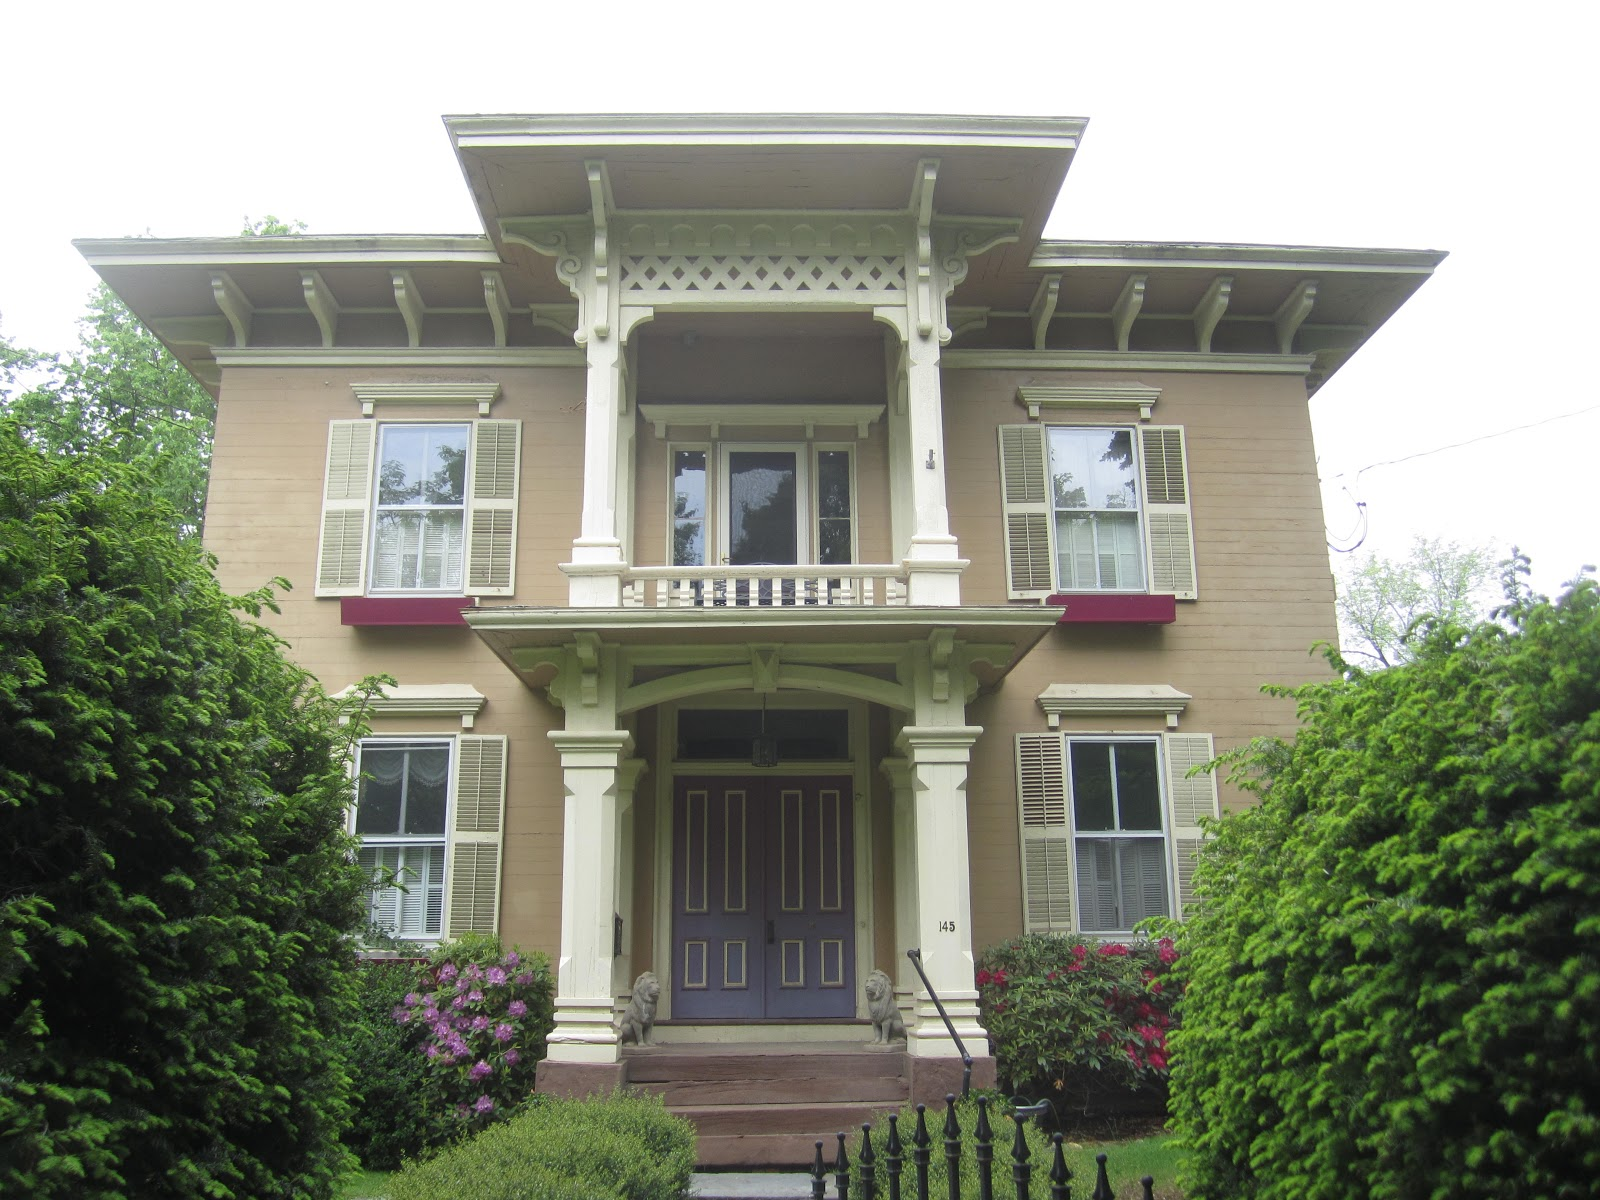 The Picturesque Style Italianate Architecture The Byron